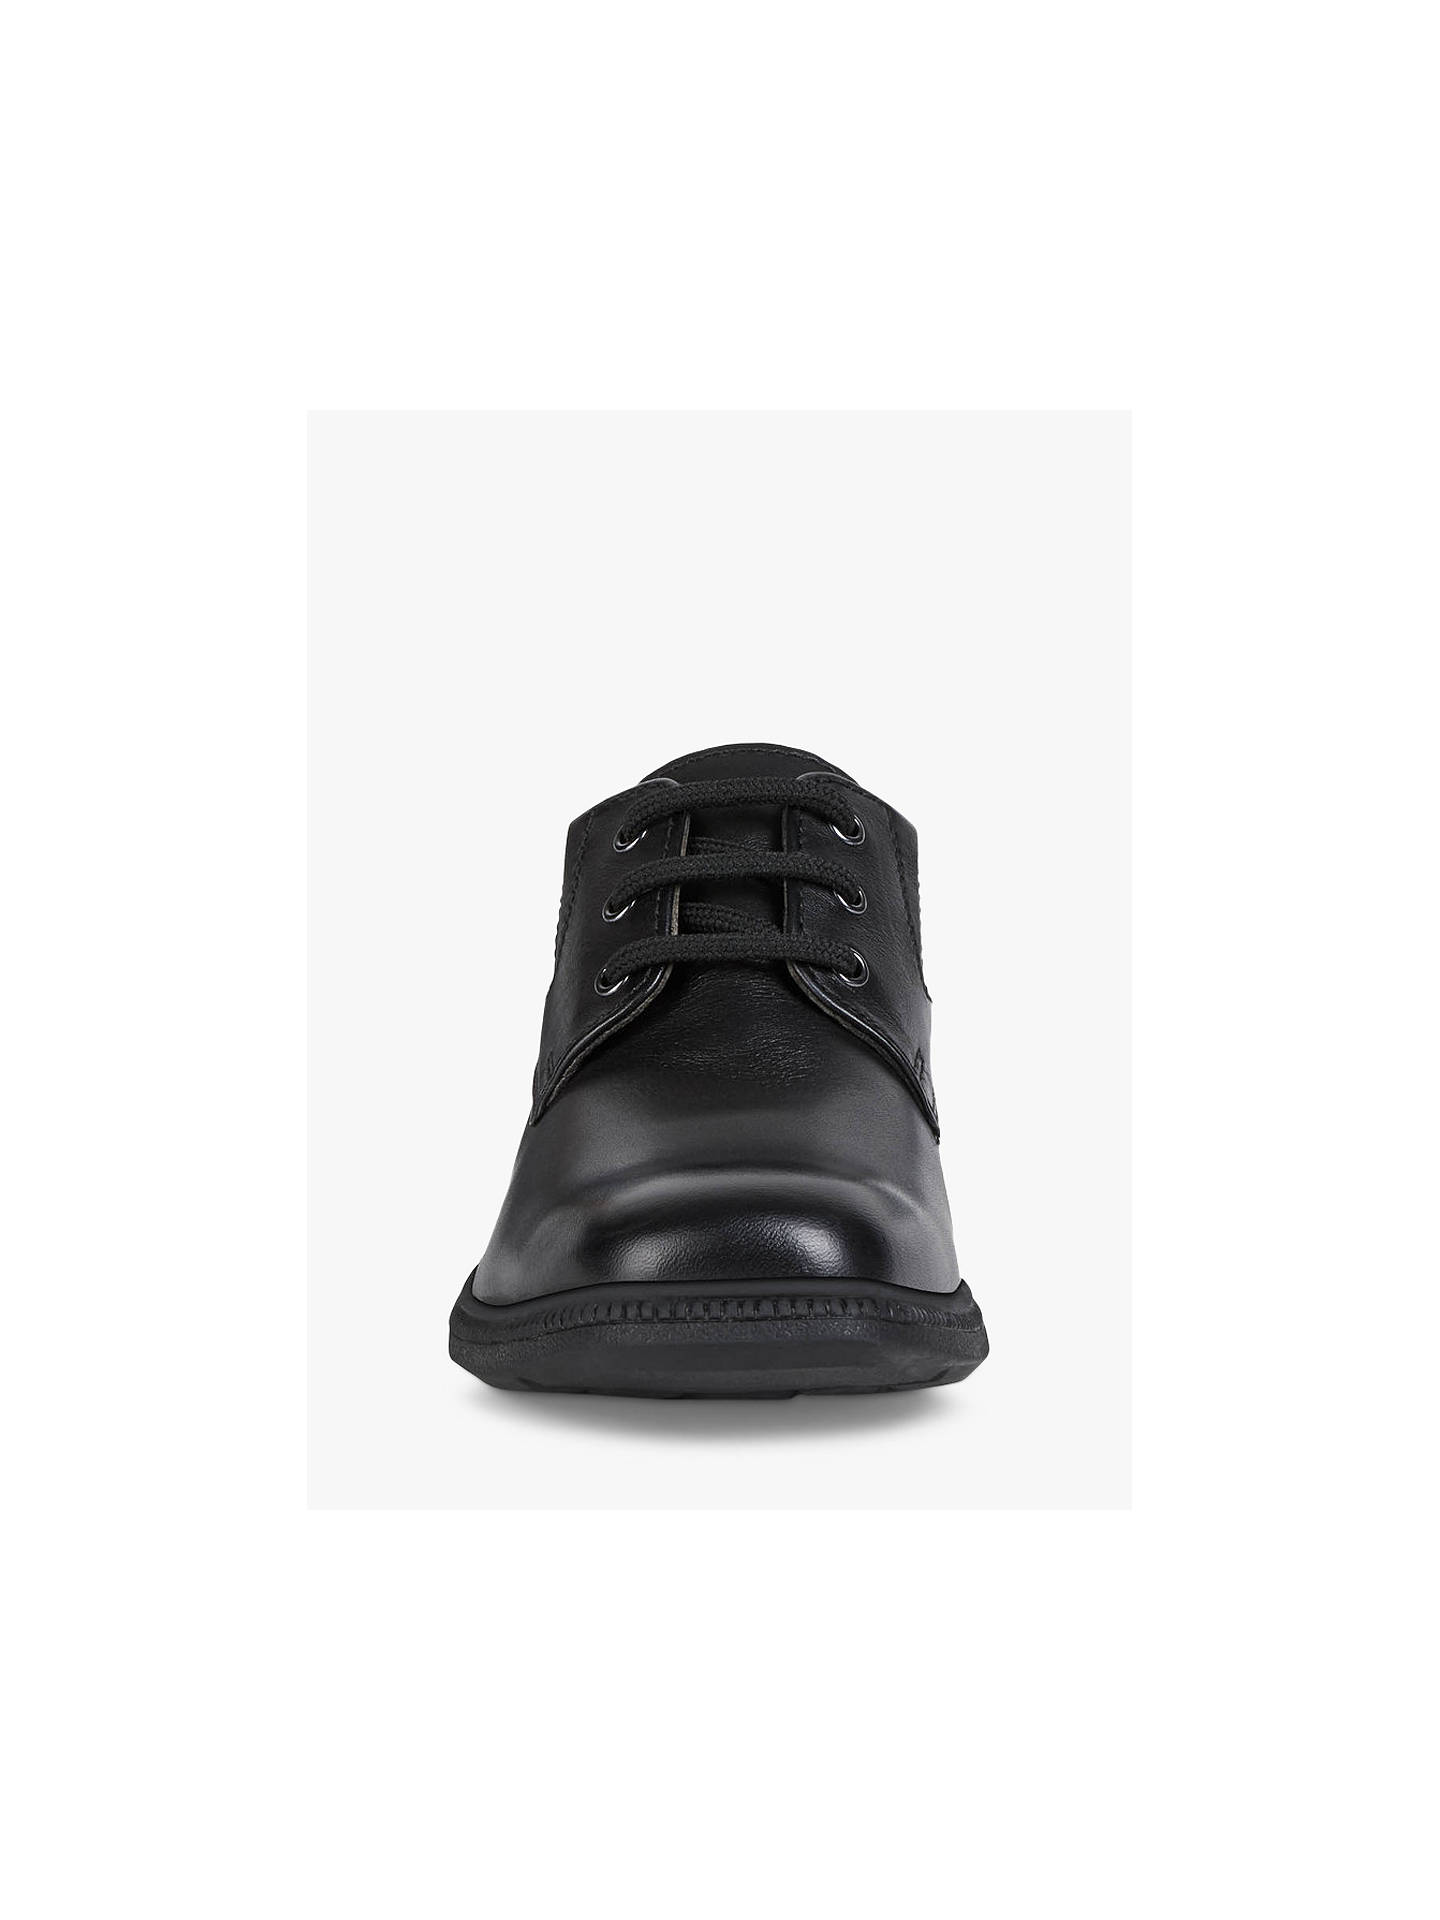 BuyGeox Federico Laced Shoes, Black, 36 Online at johnlewis.com